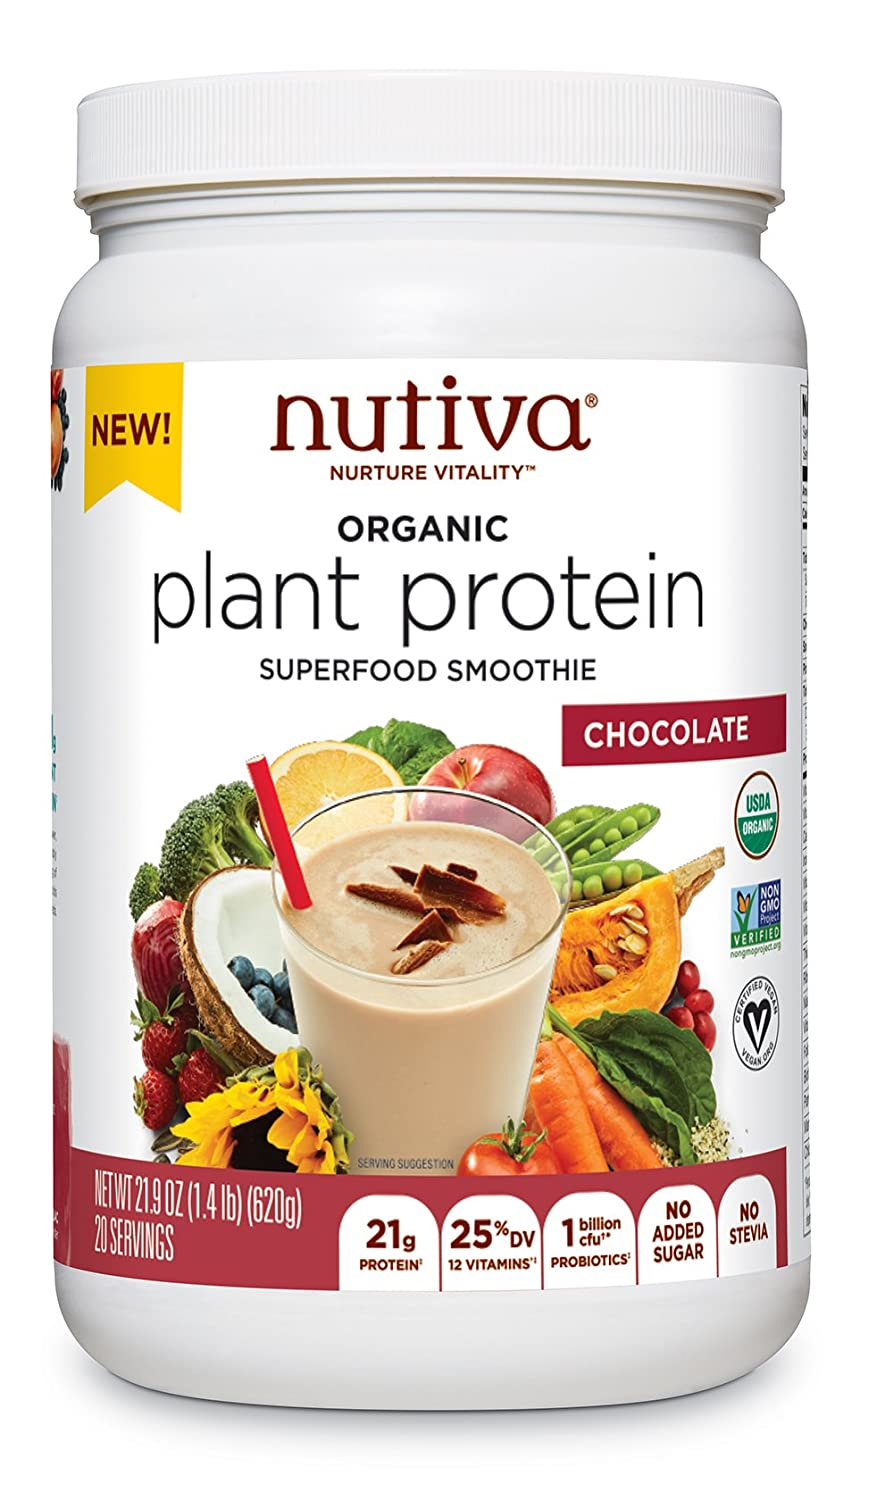 Nutiva Organic Plant Protein Superfood Smoothie, Chocolate, 1.4 Pound | USDA Organic, Non-GMO, Non-BPA | Vegan, Gluten-Free, Keto & Paleo | 21g Protein Shake & Meal Replacement with No Sugar